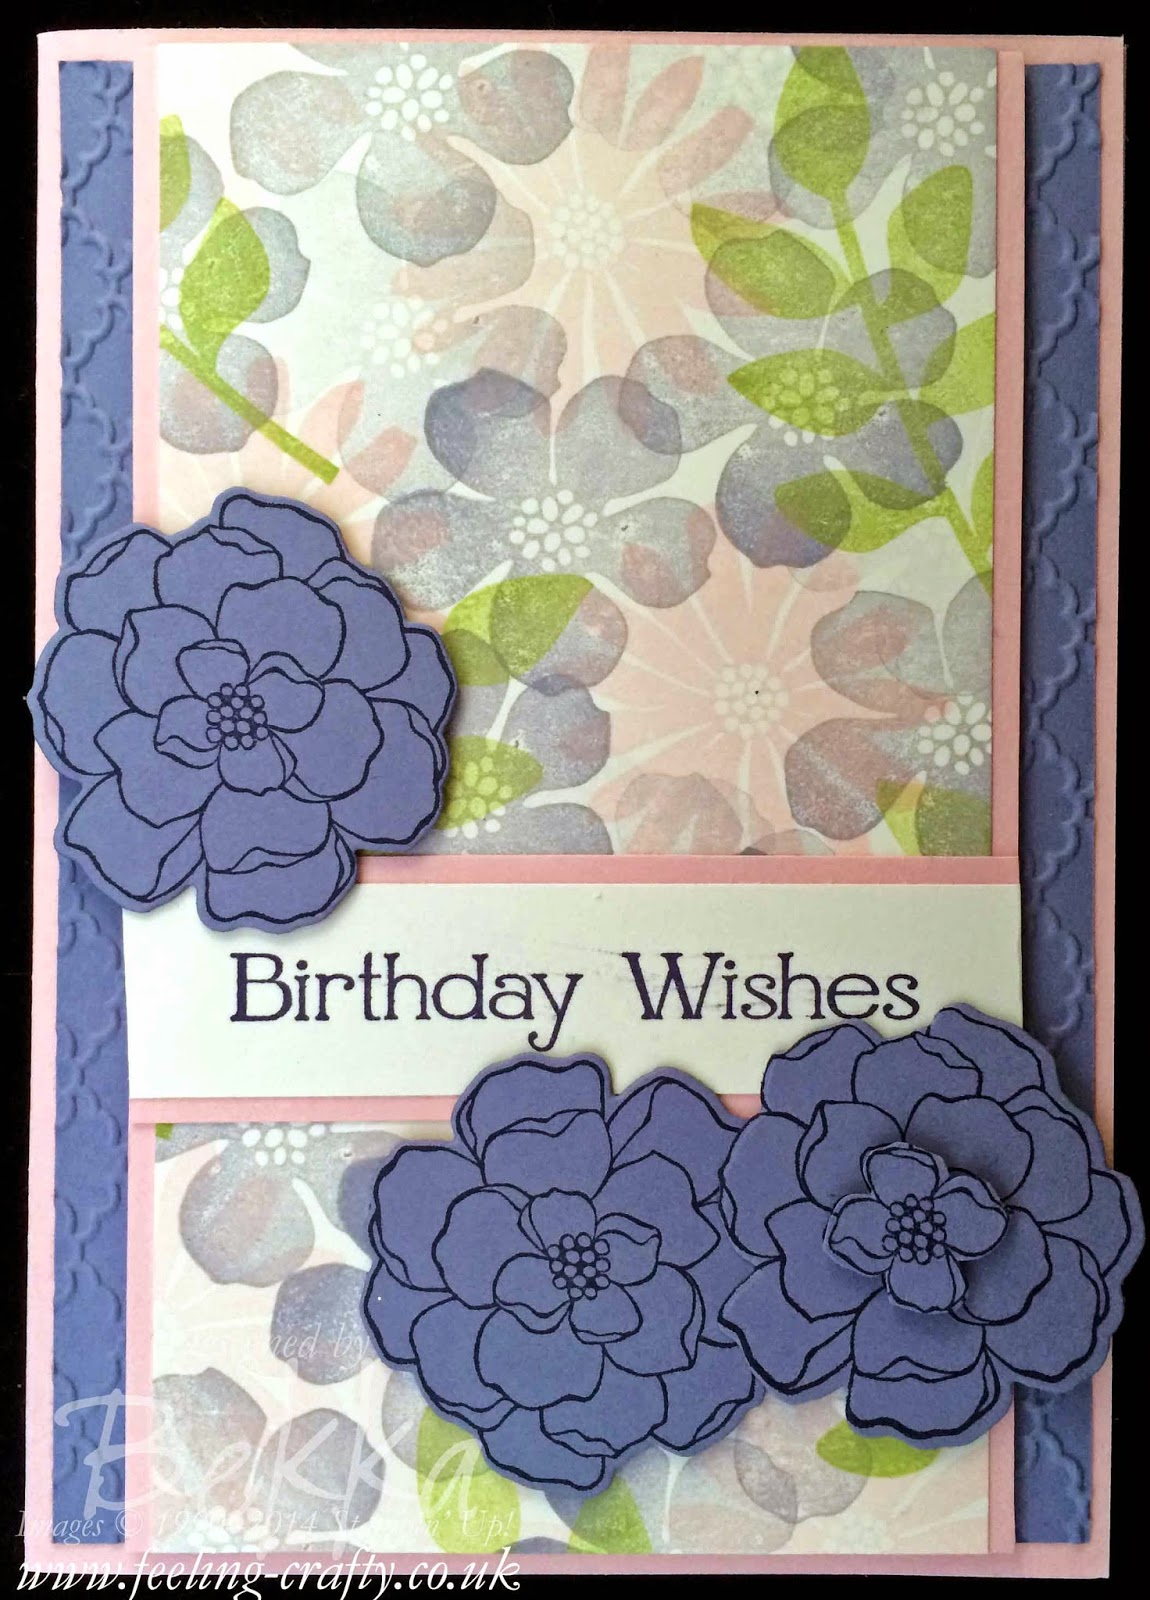 A technique for getting going with new stamps created this birthday card made using Secret Garden Stamps and Framelits from Stampin' Up!  Check it out!